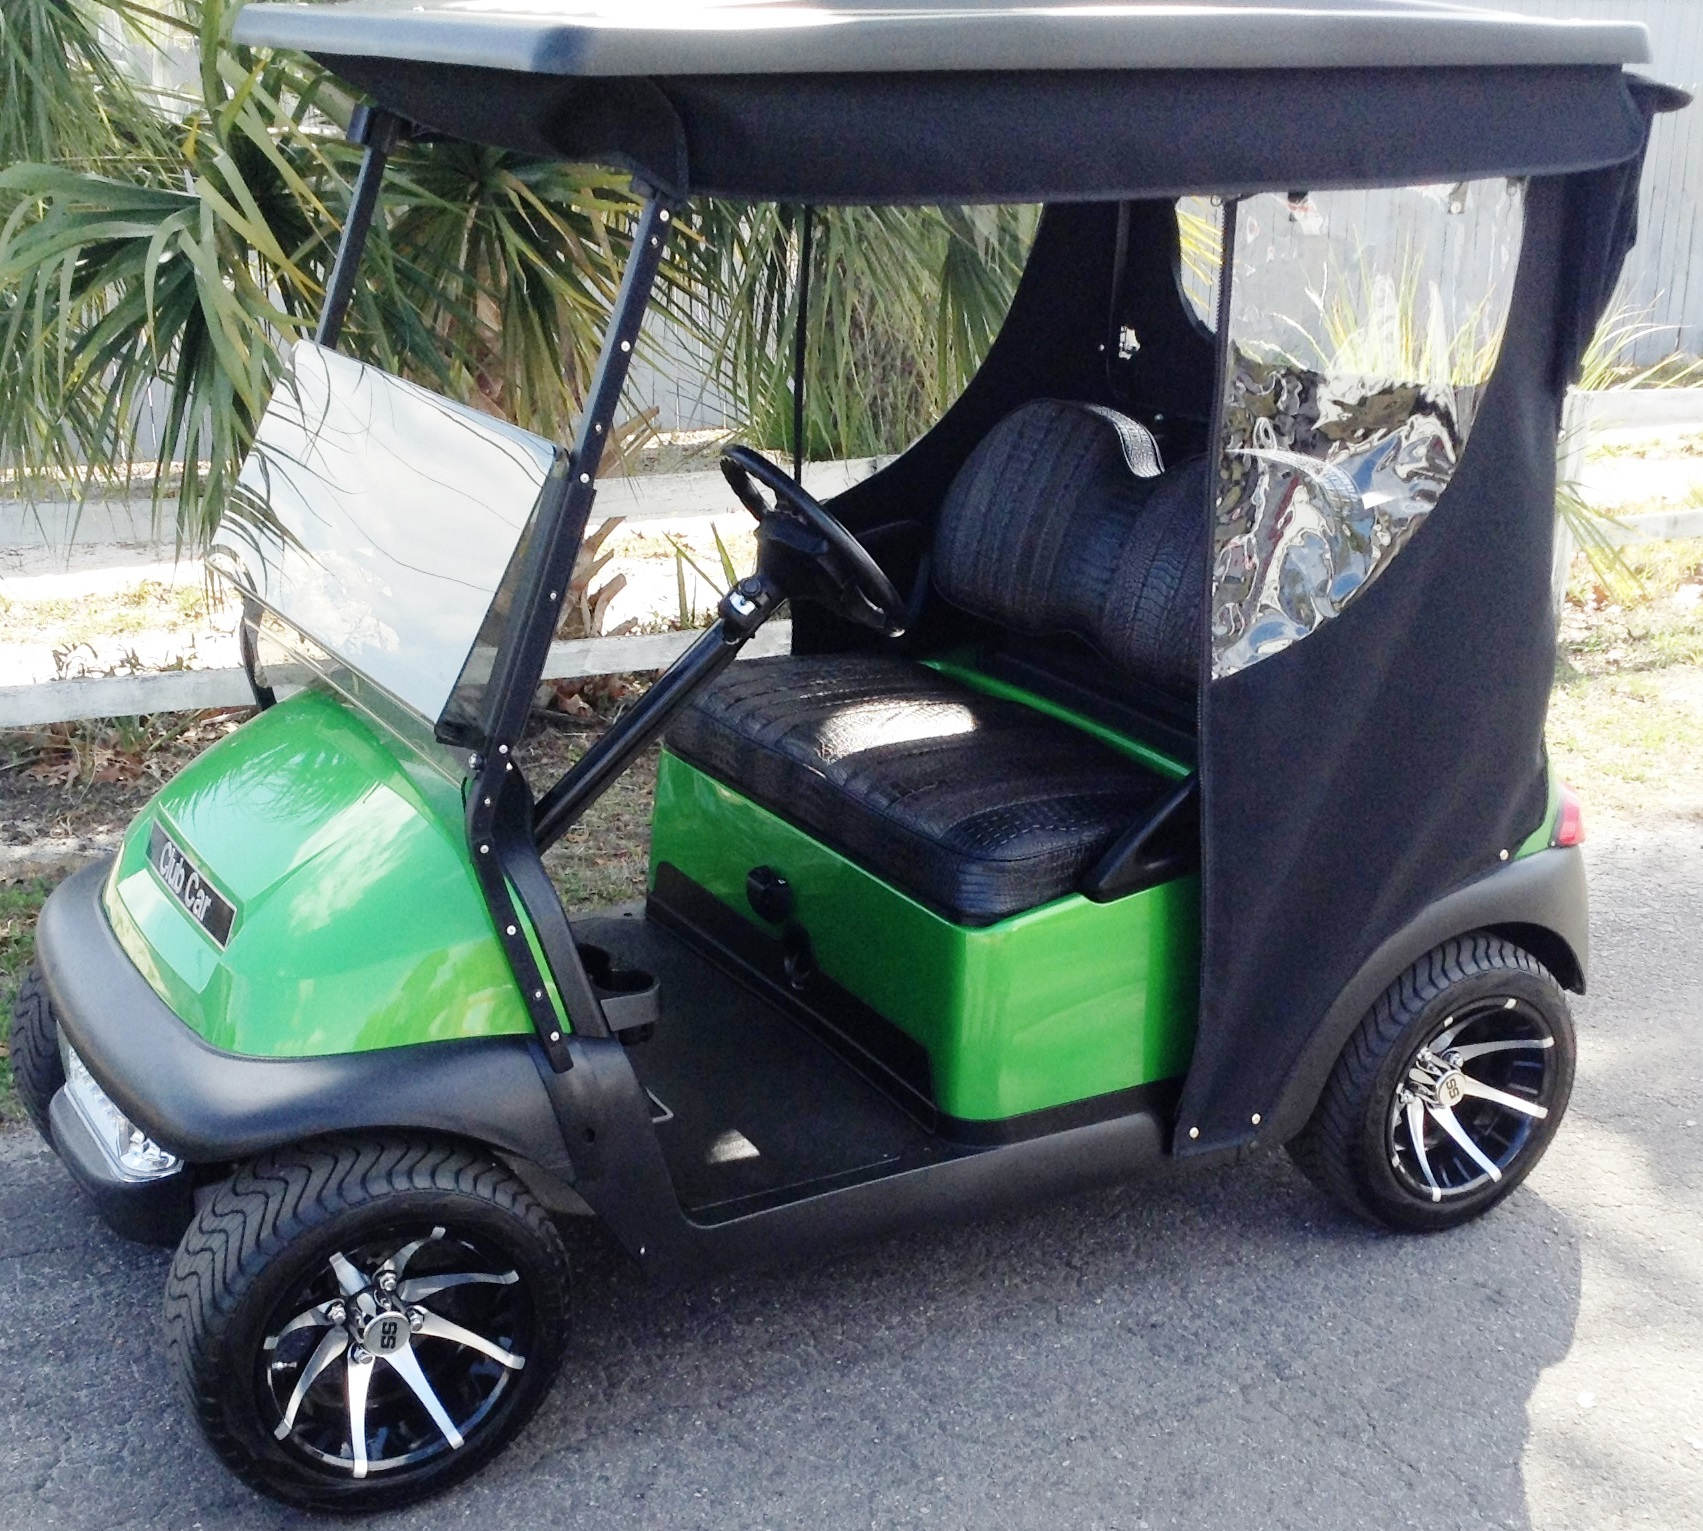 Green club car golf cart